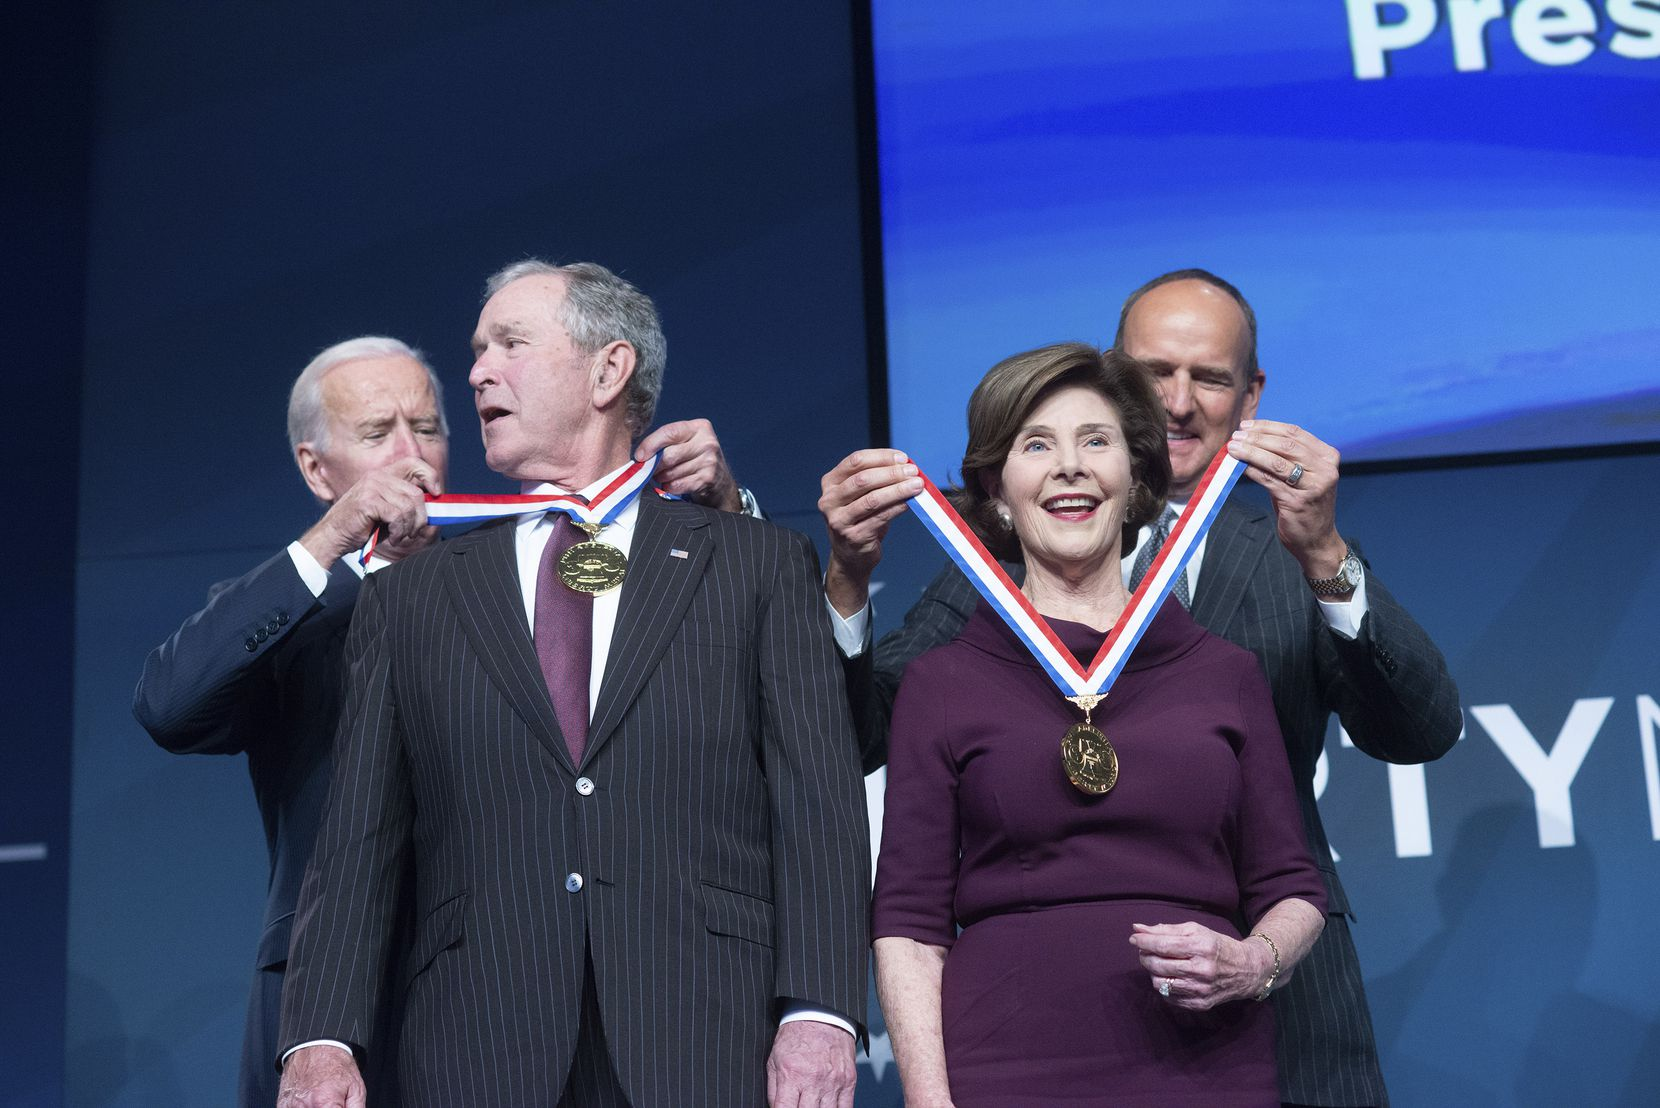 Former Vice President Joe Biden (back left) and National Constitution Center Executive Committee Chairman Doug DeVos present former President George W. Bush and former first lady Laura Bush the 2018 Liberty Medal in a Veterans Day ceremony at  The National Constitution Center Sunday in Philadelphia.